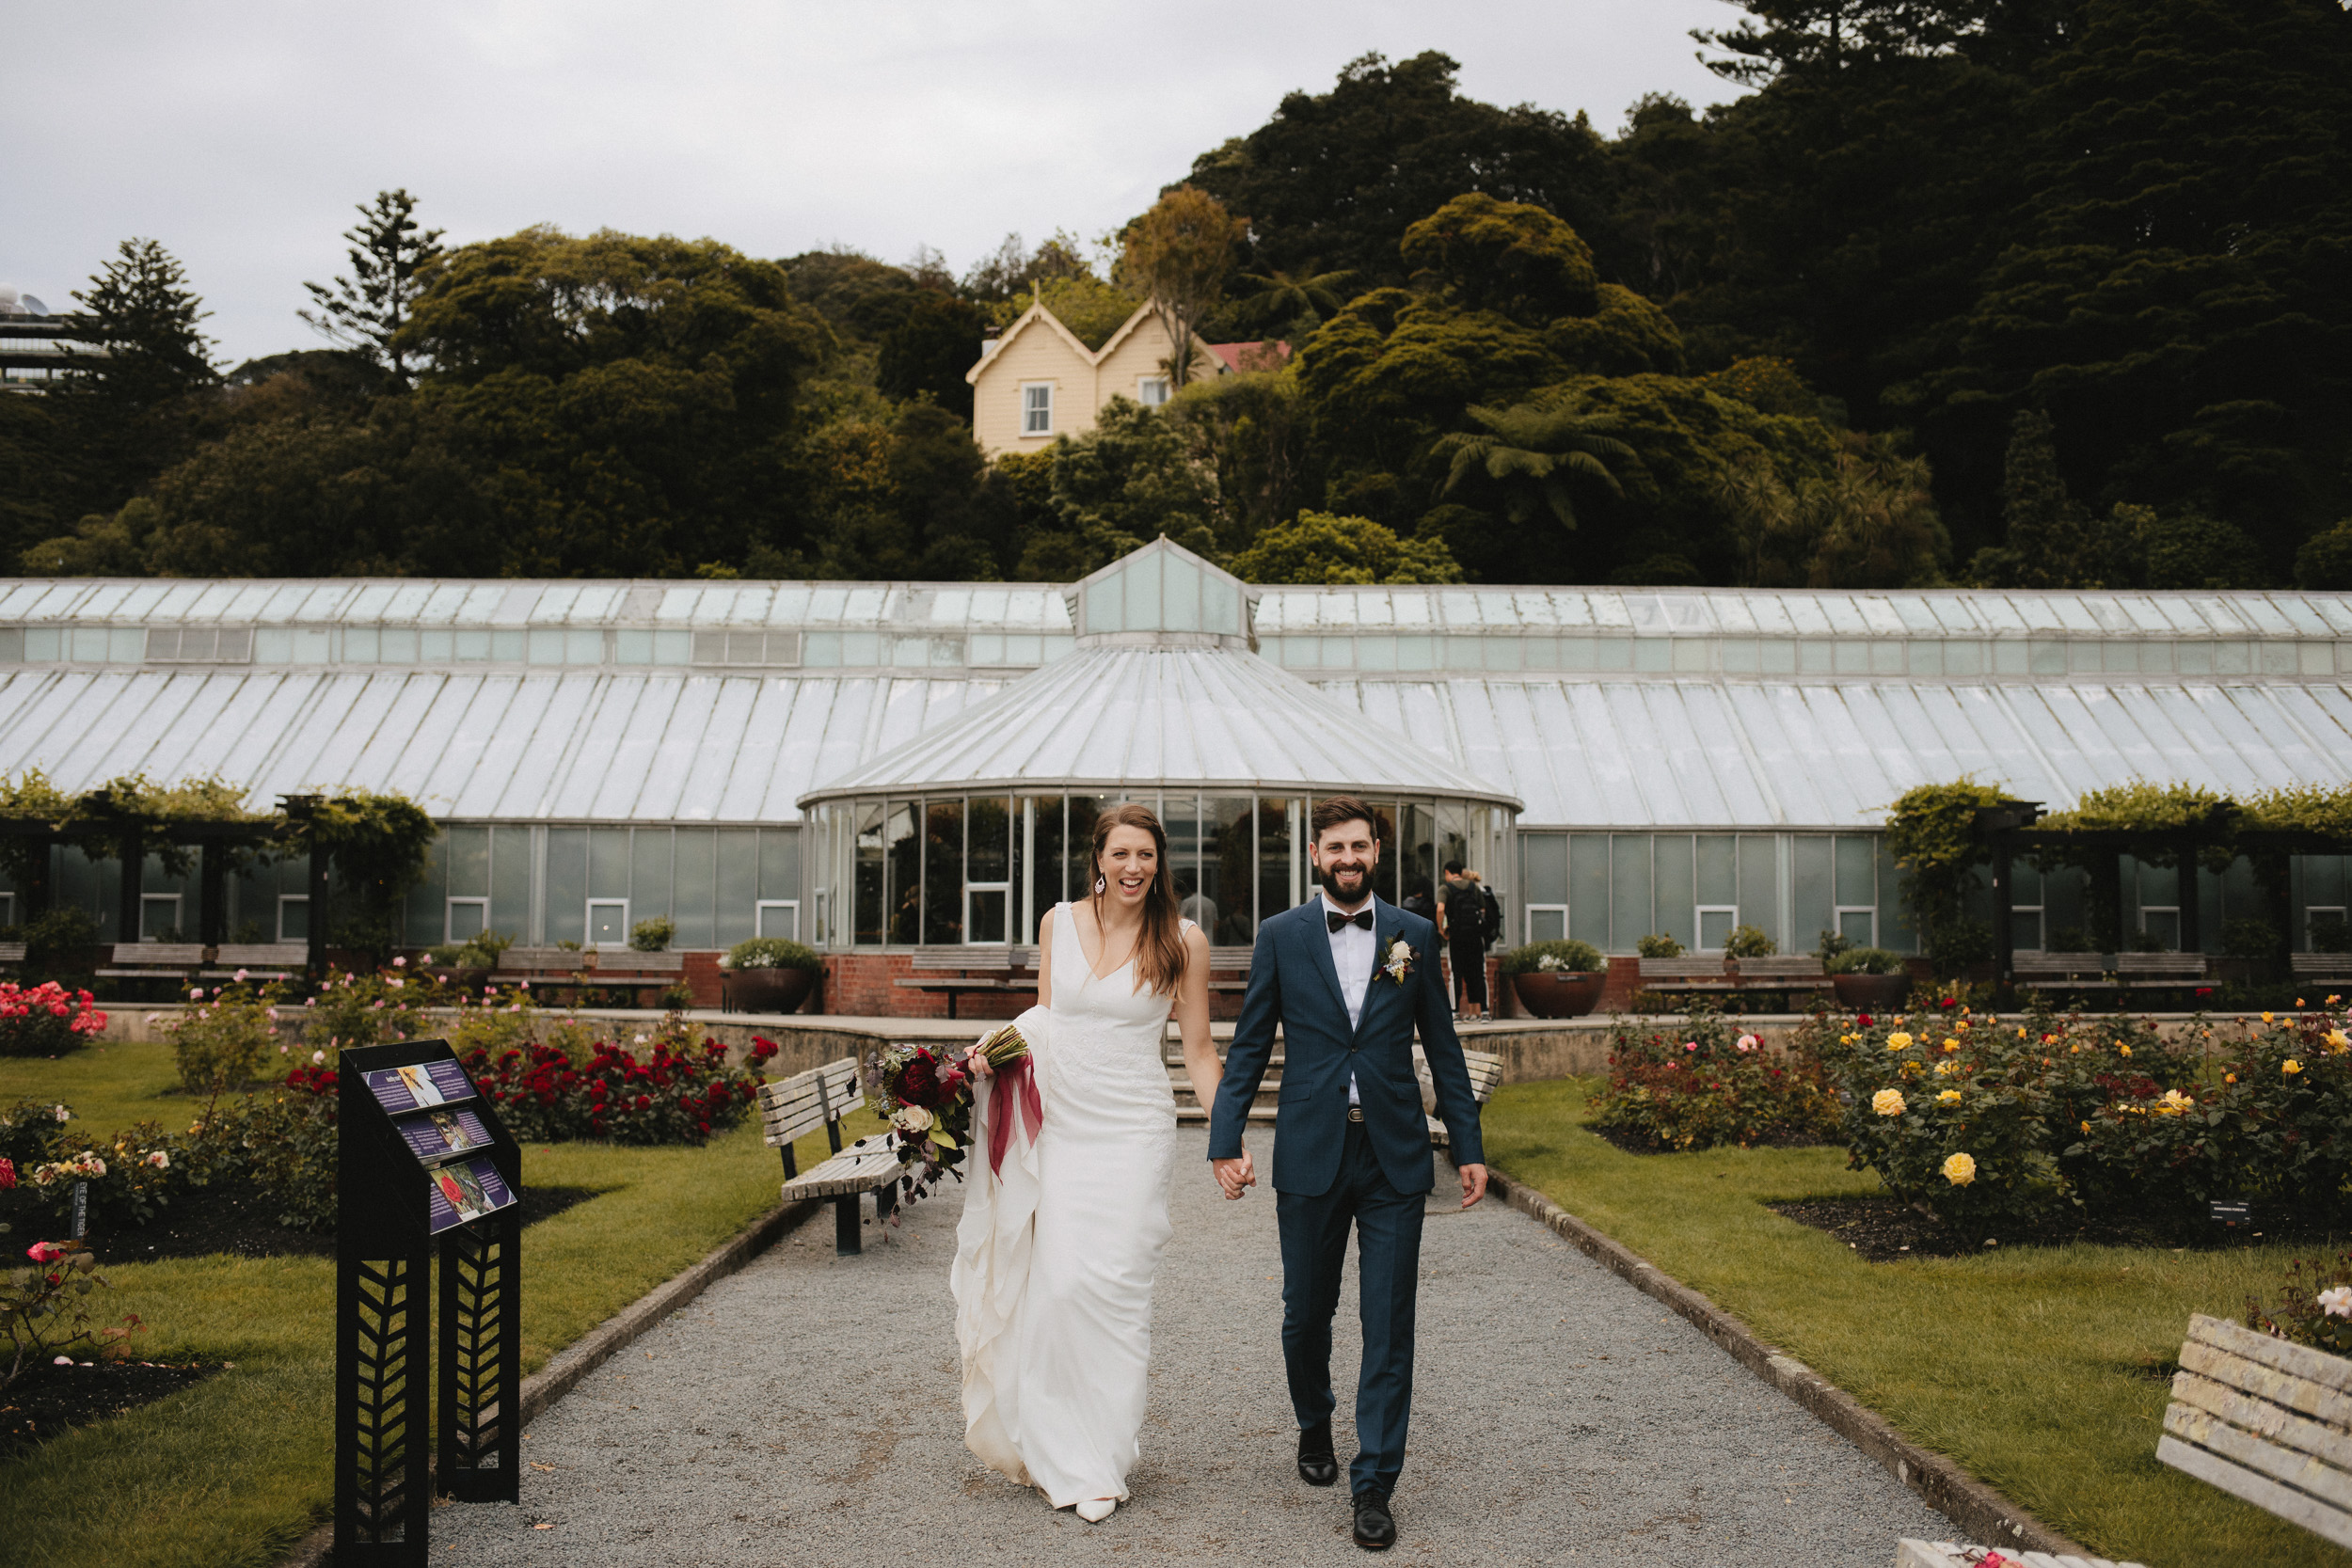 Their glasshouse wedding reception parties on behind them at the Botanic Gardens in Wellington